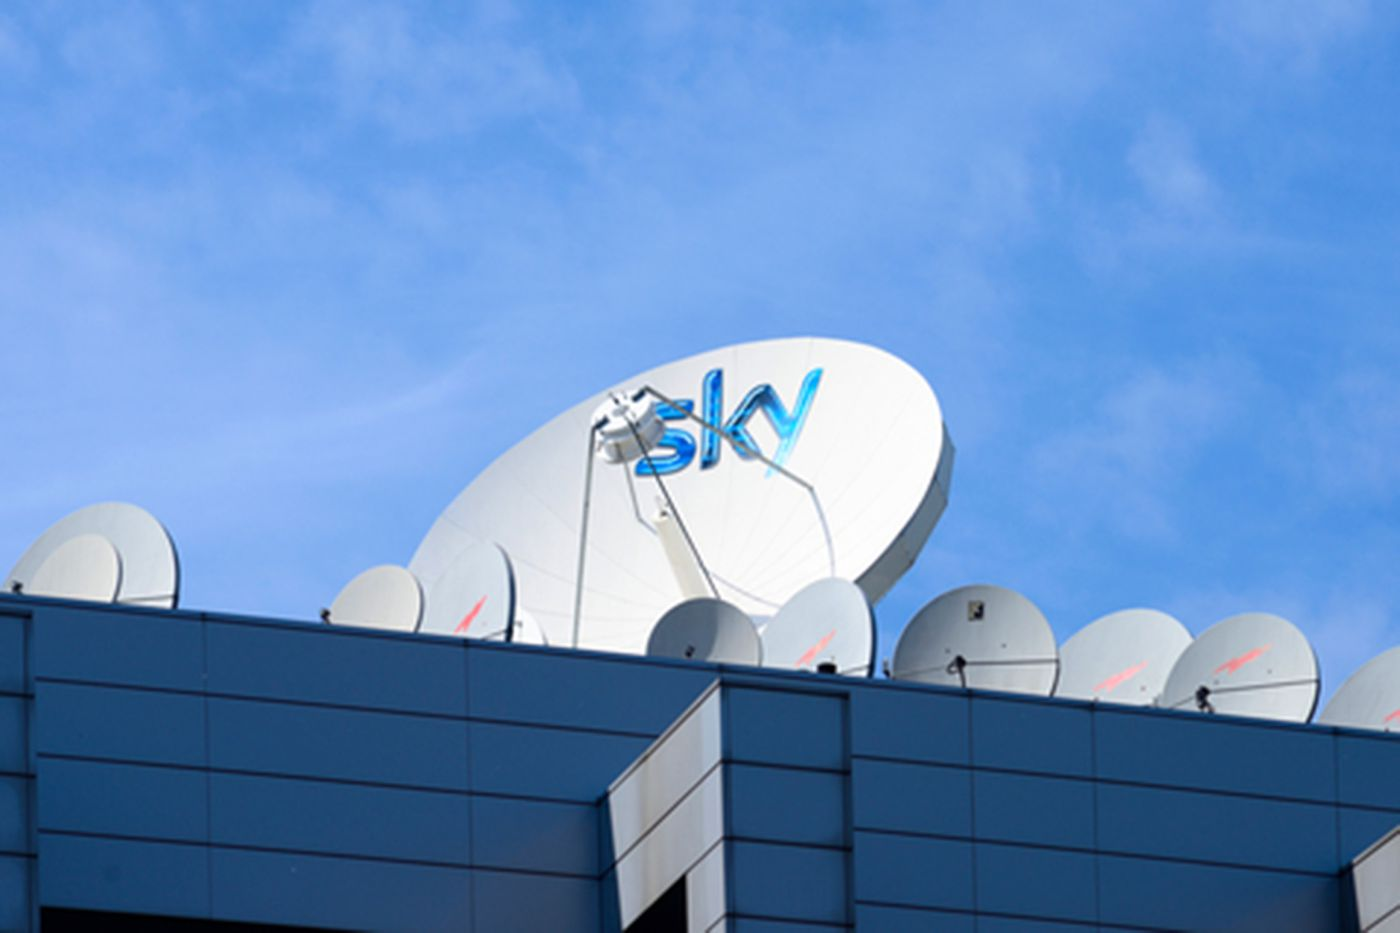 comcast is now majority owner of sky